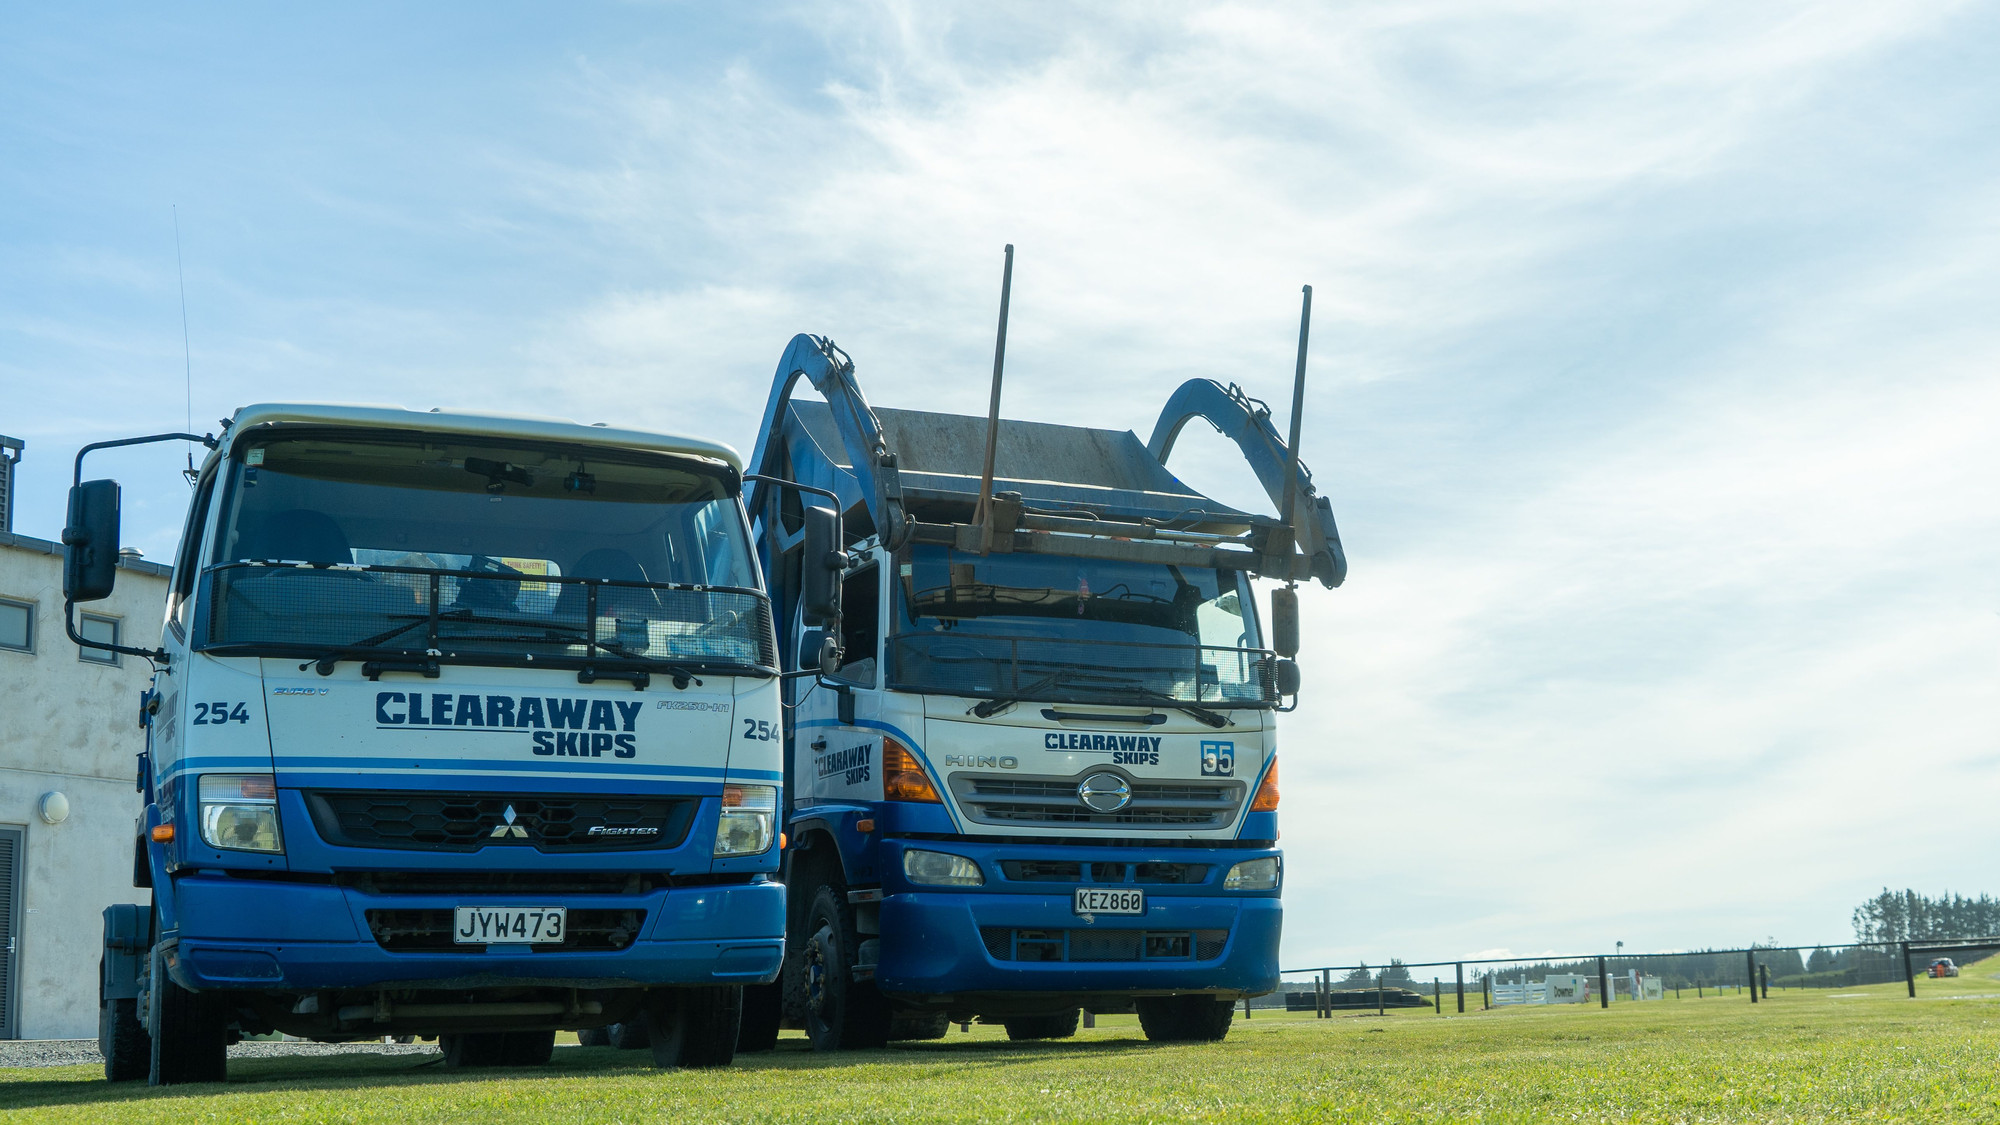 Clearaway Skips Huka Truck #254 and Front Load  #55